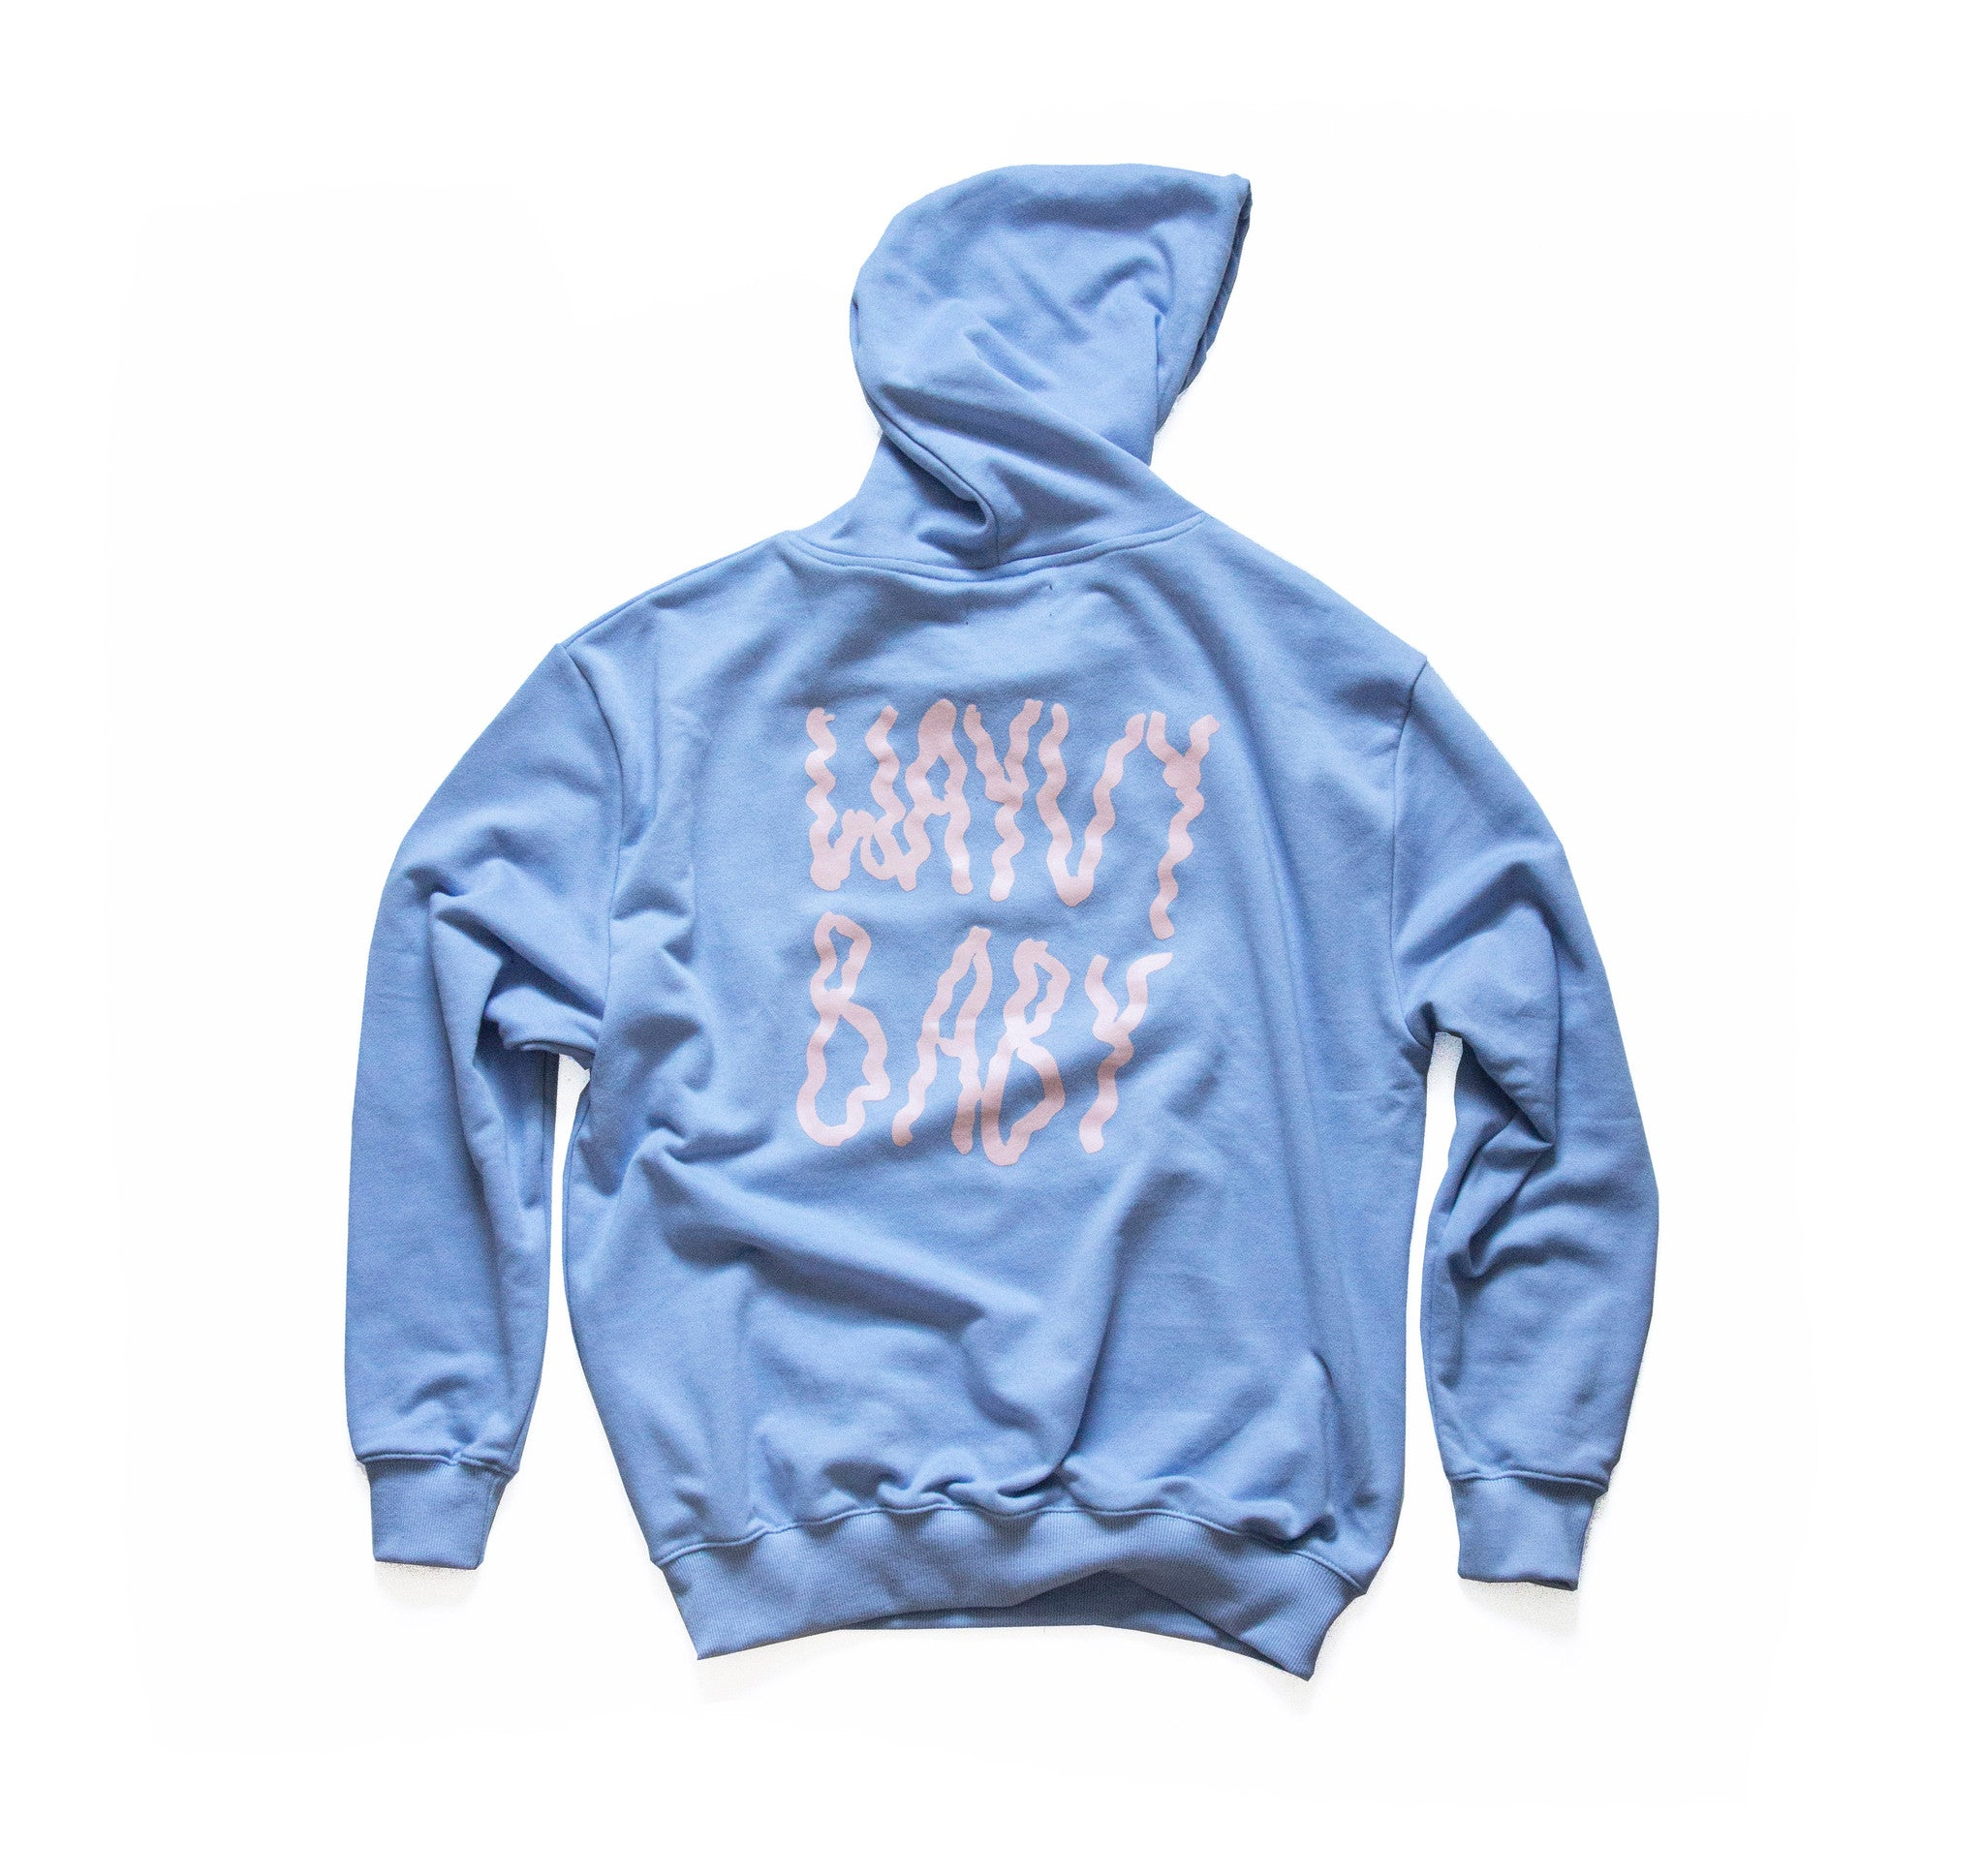 """WAVE TEAM"" - SERENITY BLUE - PULLOVER"